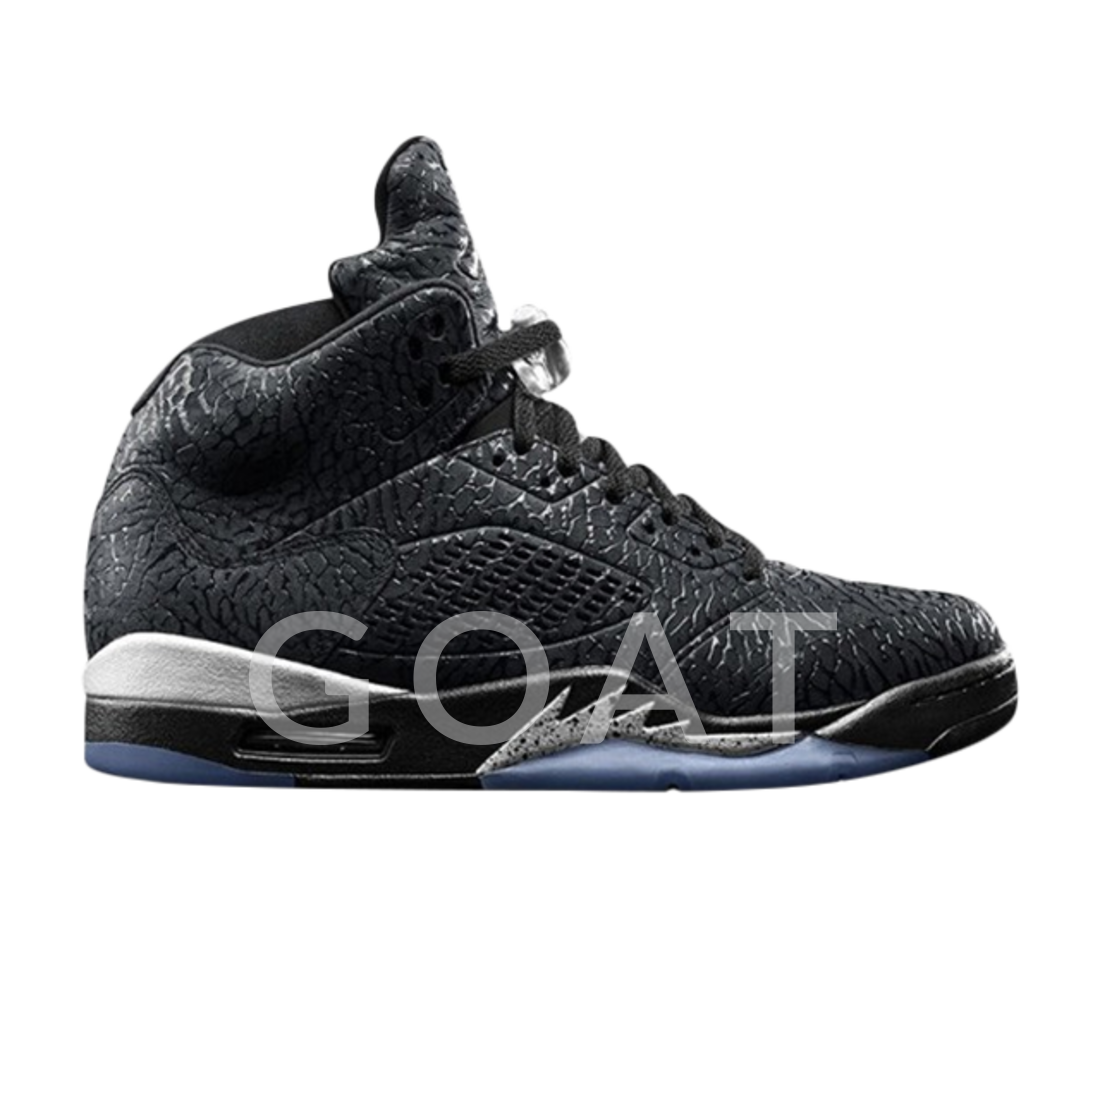 Air Jordan 5 Retro 3Lab5 'Elephant Print' Air jordan 5